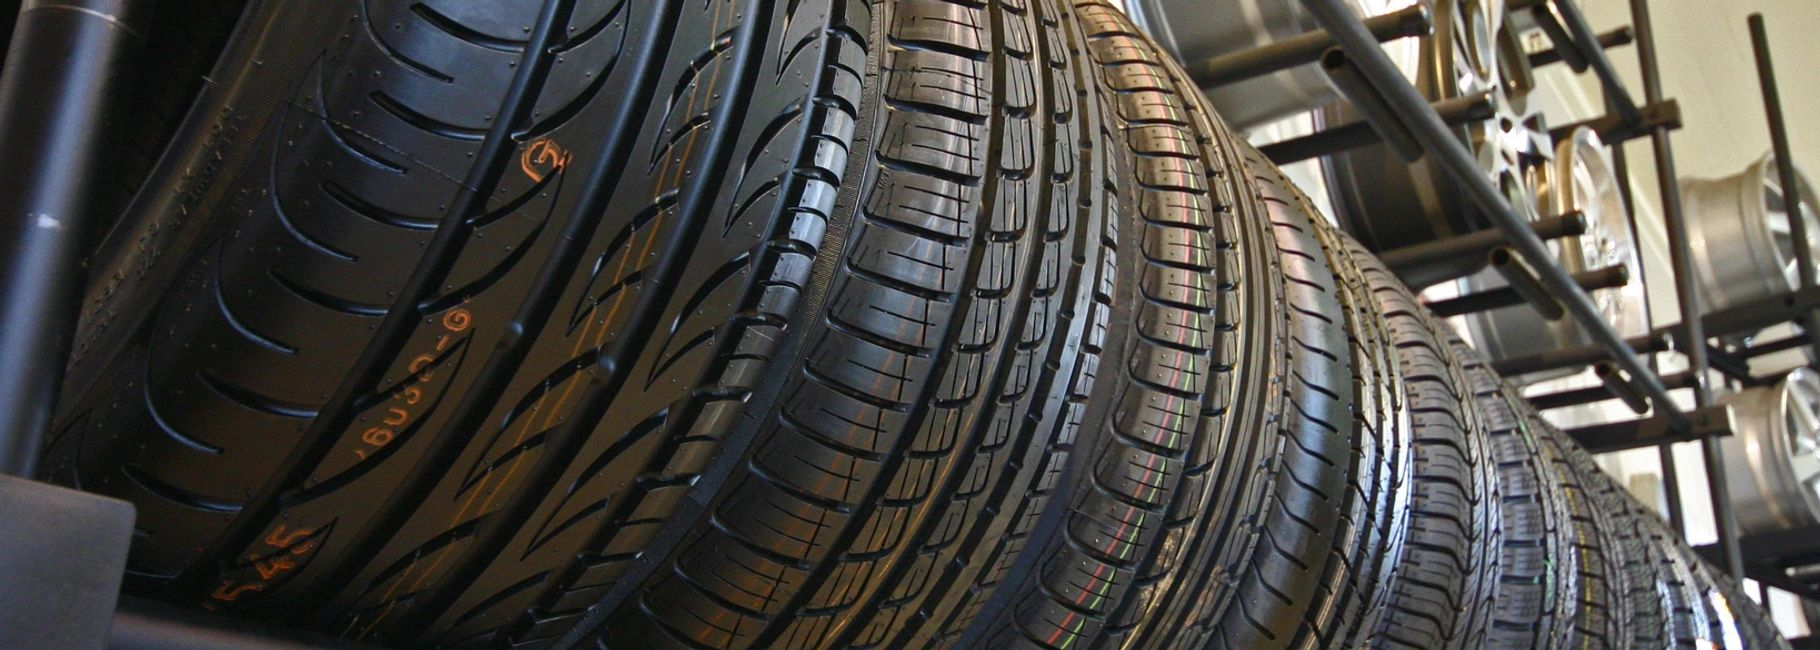 New tyres, Puncture repair, tyres, tires, Car Tire Replacement, Brand New Car Tyres, tyre service